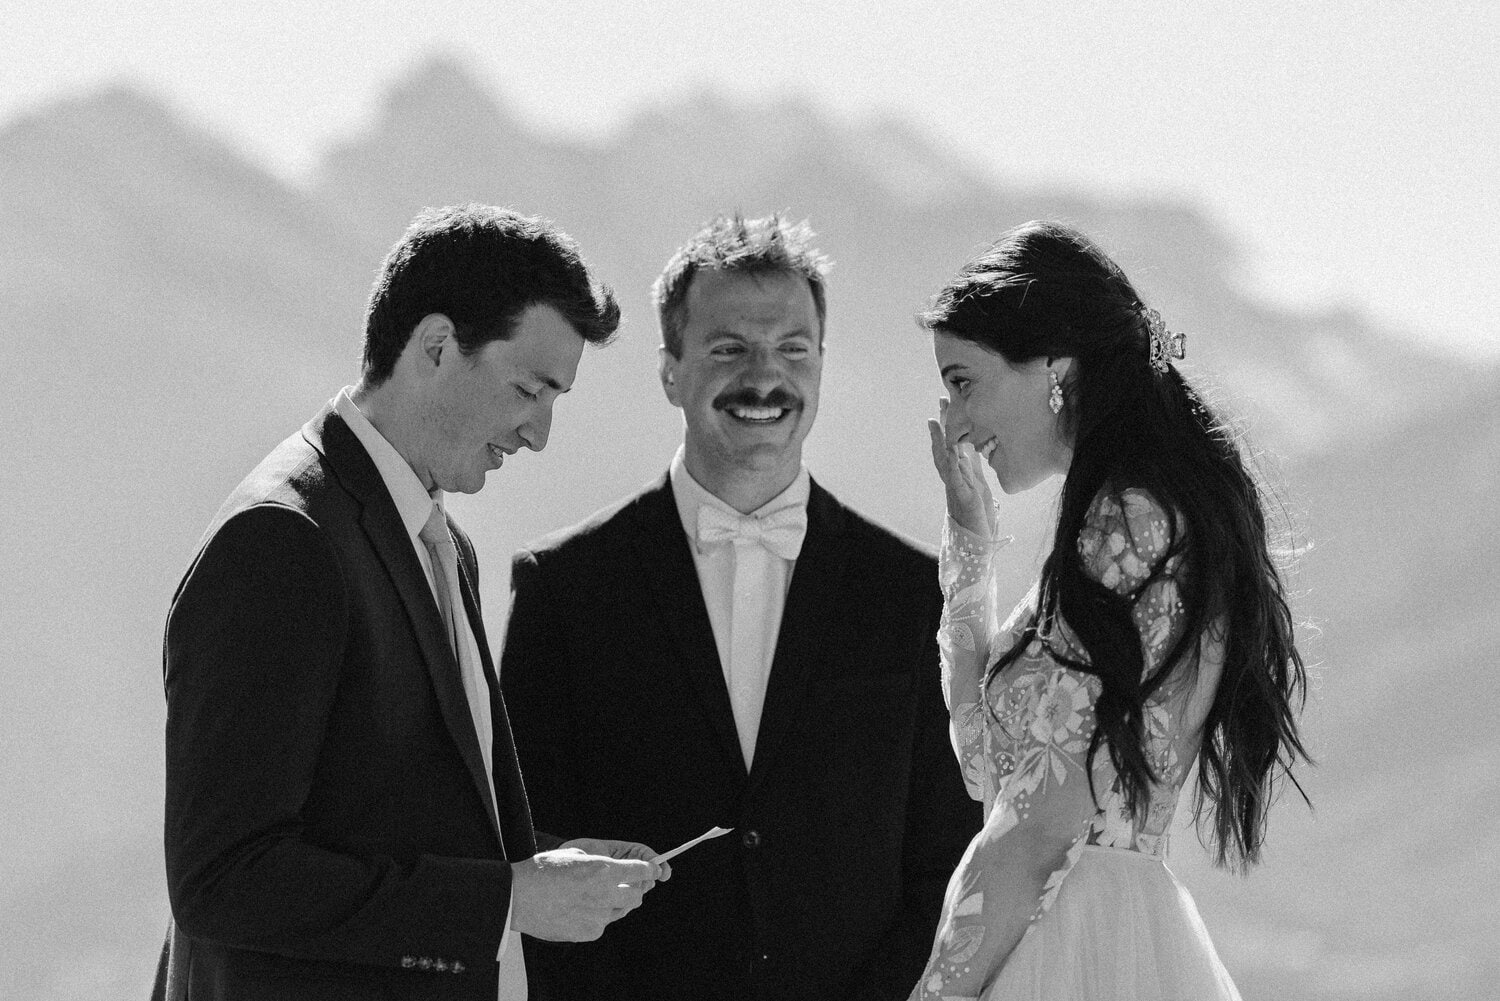 Groom reads personal vows to his bride while she looks on and cries. Photo in black and white.